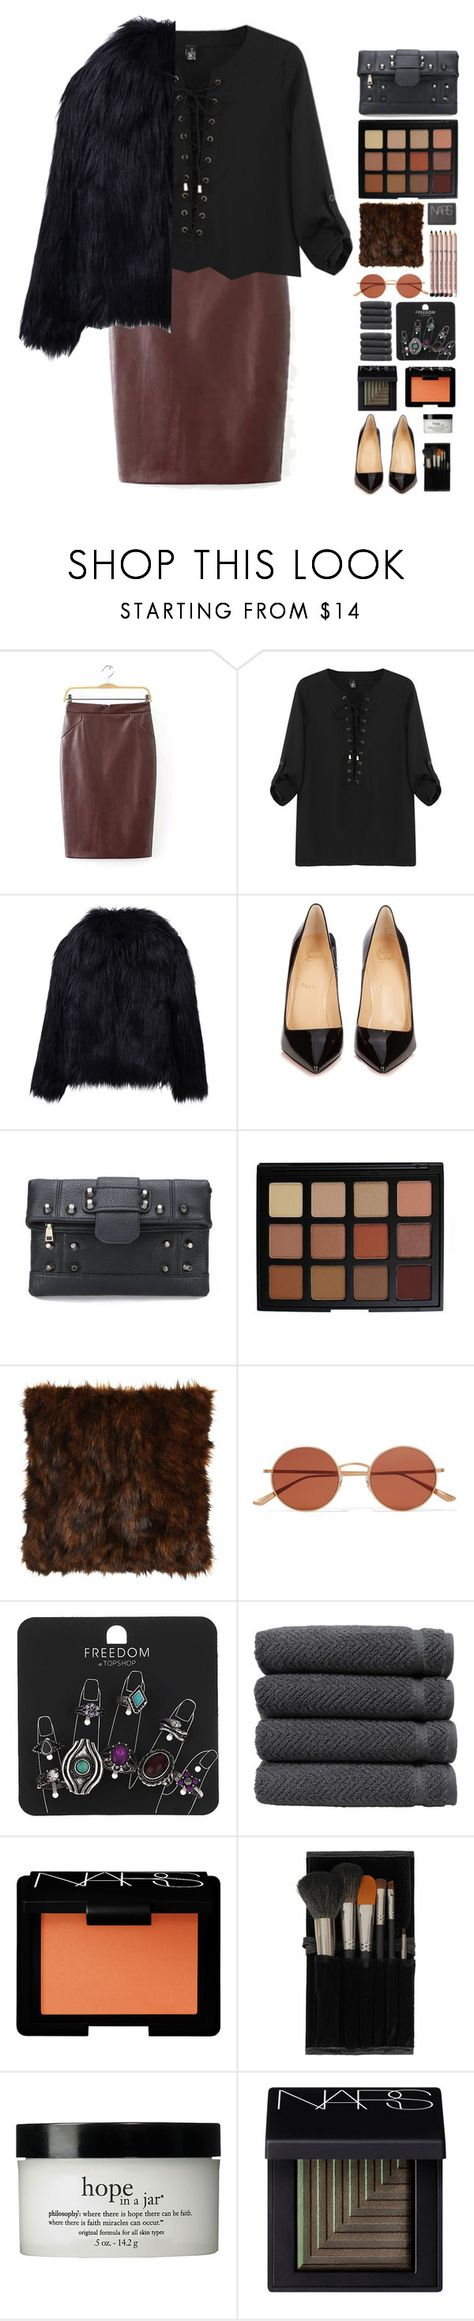 """""""you're a liability    yoins 6"""" by lanadelnotyou ❤ liked on Polyvore featuring WithChic, Christian Louboutin, Morphe, NARS Cosmetics, Isabella Collection, Oliver Peoples, Aveda, Topshop, Linum Home Textiles and philosophy"""